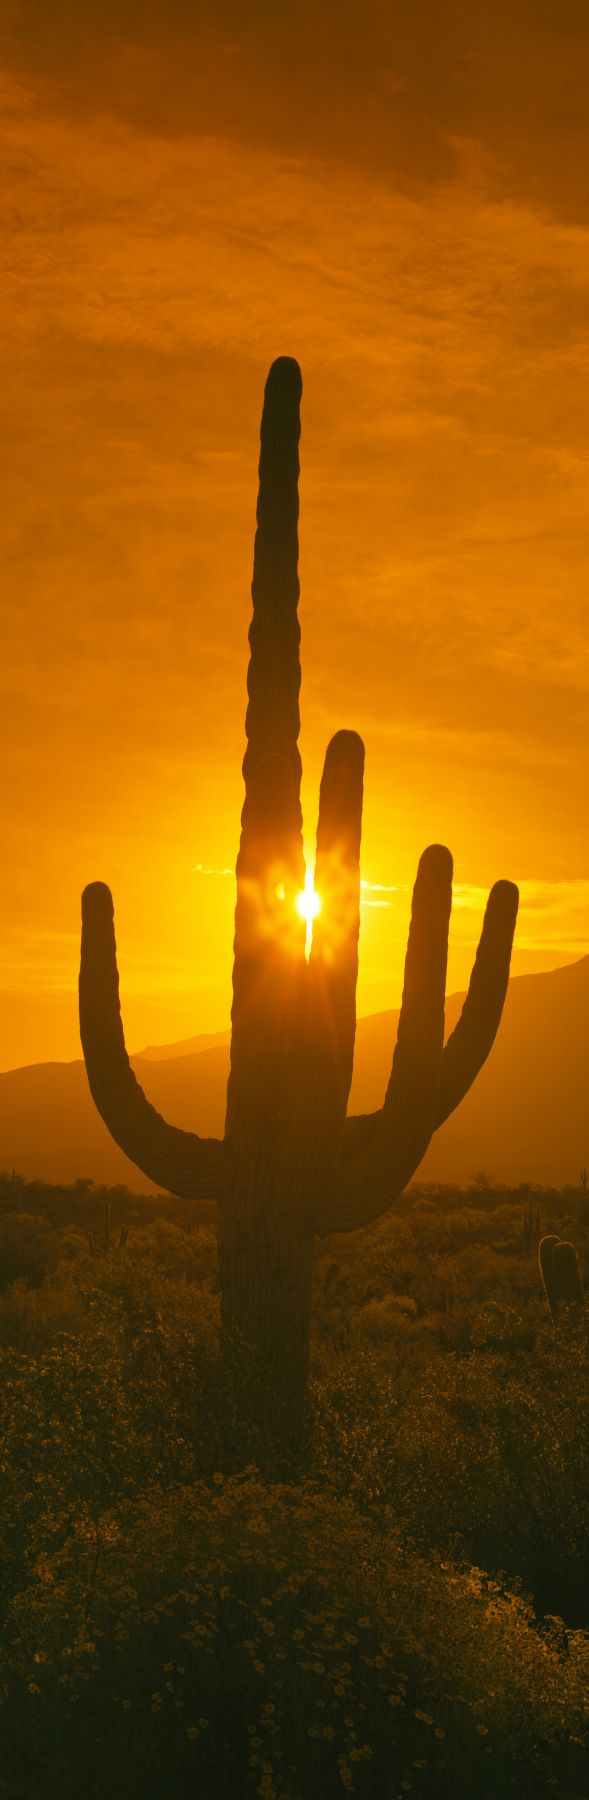 Saguaro cactus (Carnegiea gigantea) in a desert at sunrise, Arizona, USA